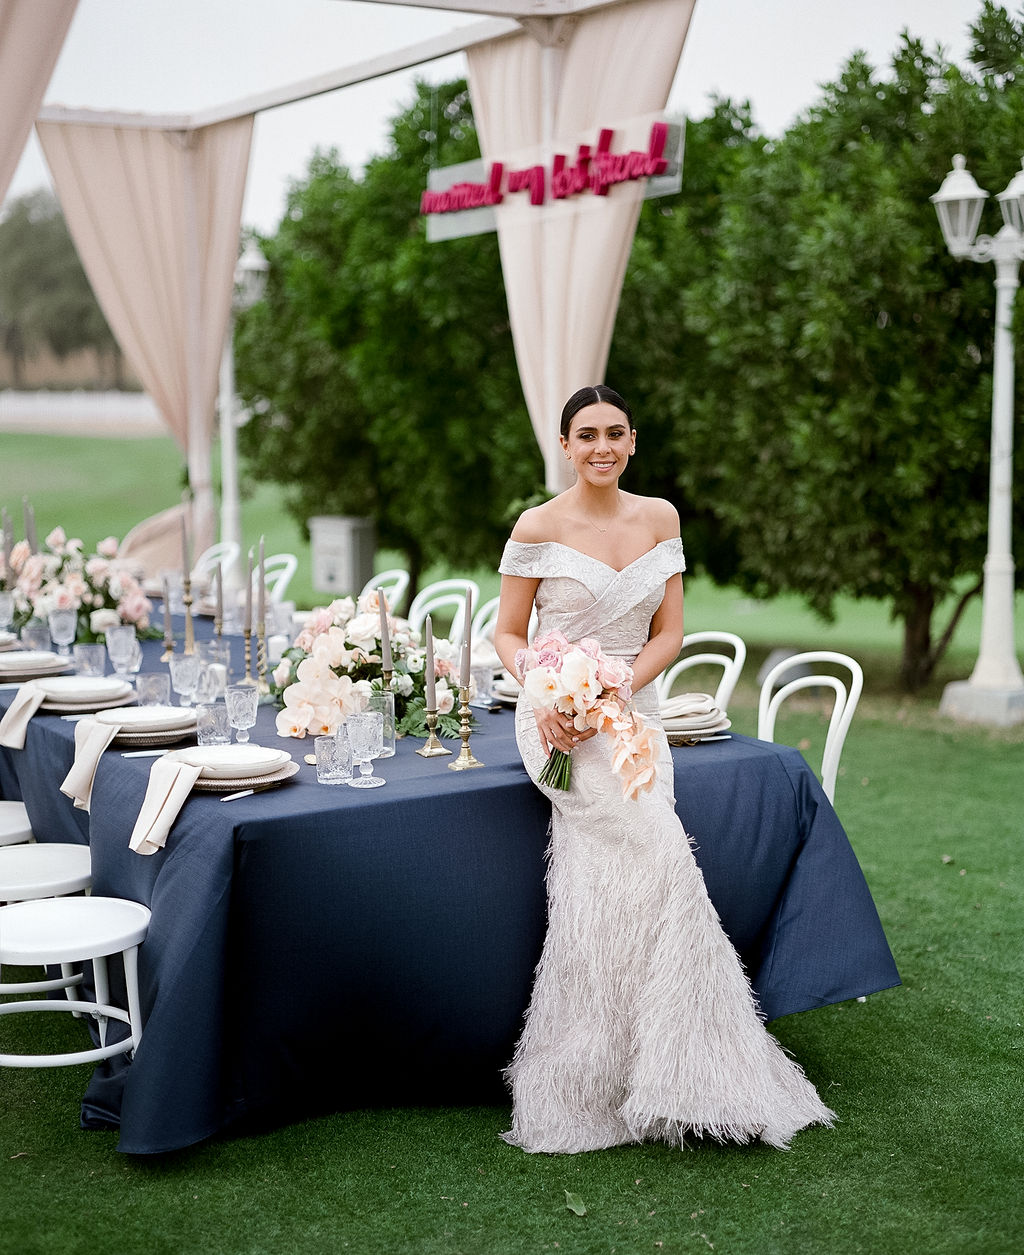 The Purple Chair Dubai Wedding Planner Arabian Ranches Golf Club 4.jpg